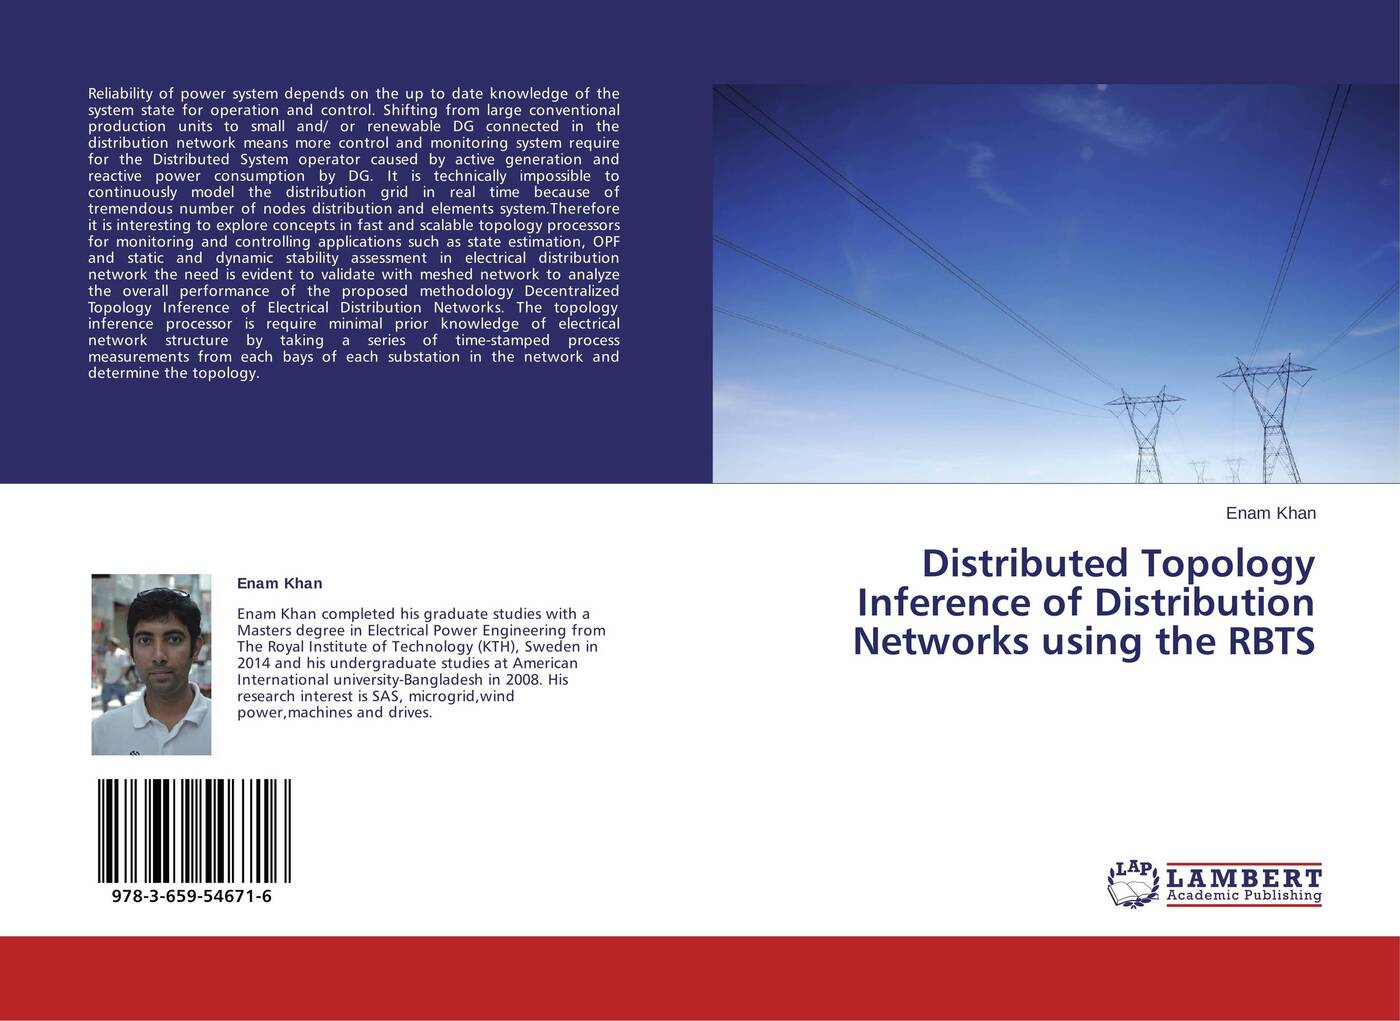 Enam Khan Distributed Topology Inference of Distribution Networks using the RBTS mohammad shahidehpour handbook of electrical power system dynamics modeling stability and control